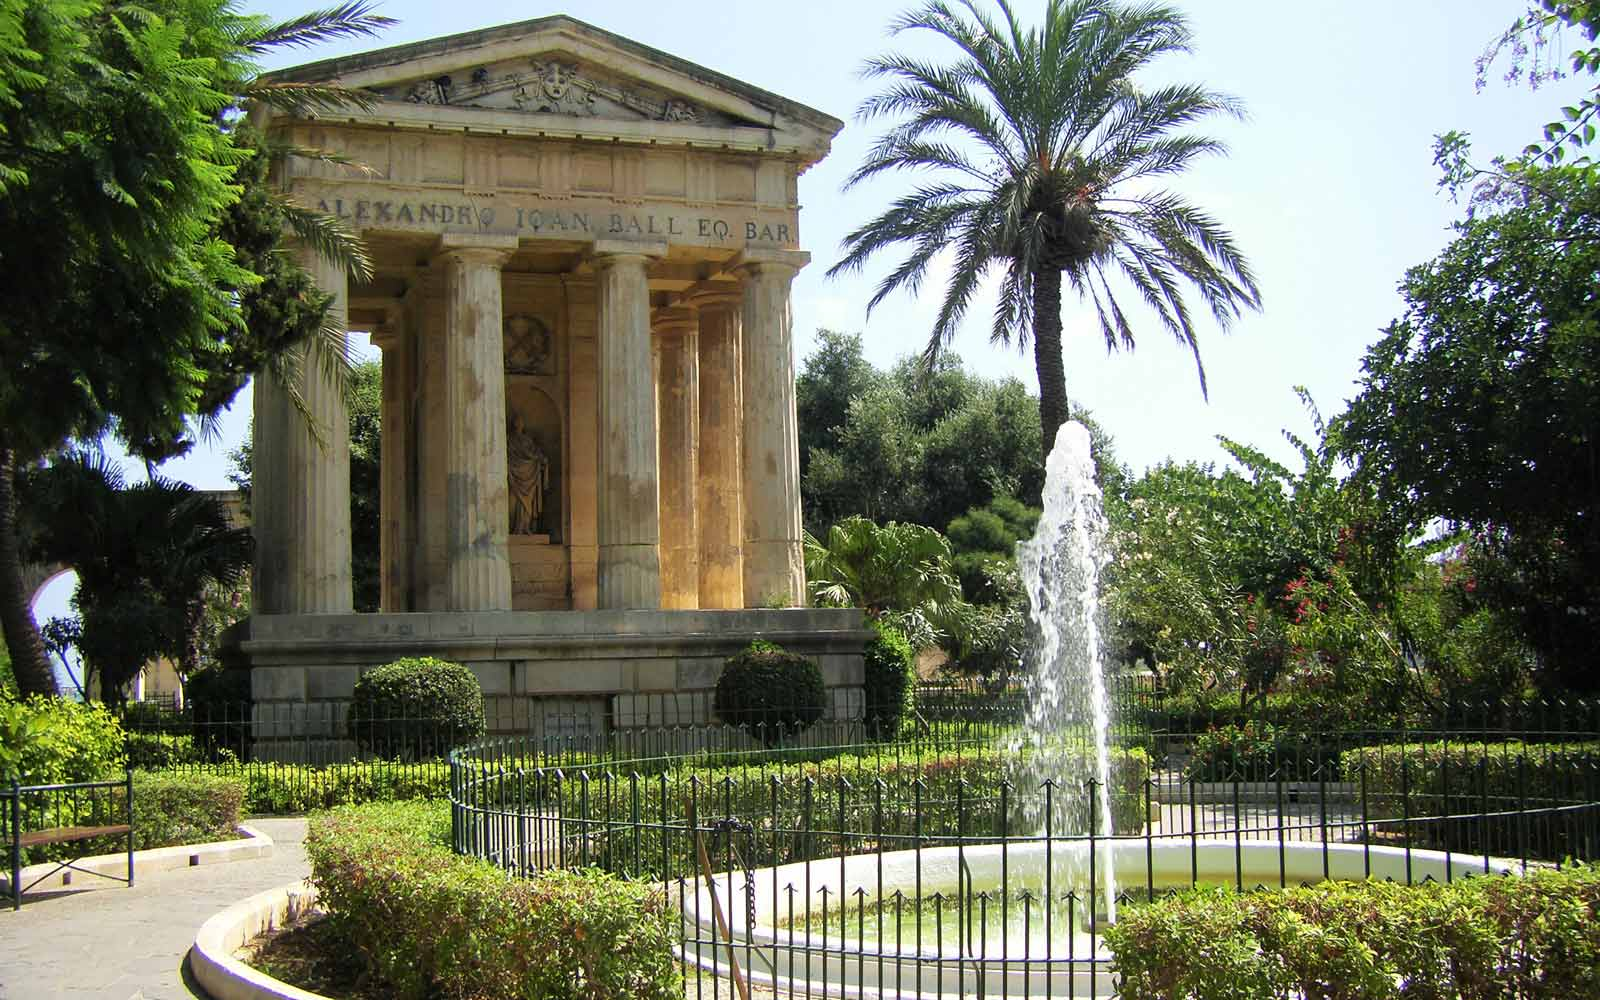 Denkmal für Sir Alexander Ball in den Lower Barrakka Gardens auf Malta